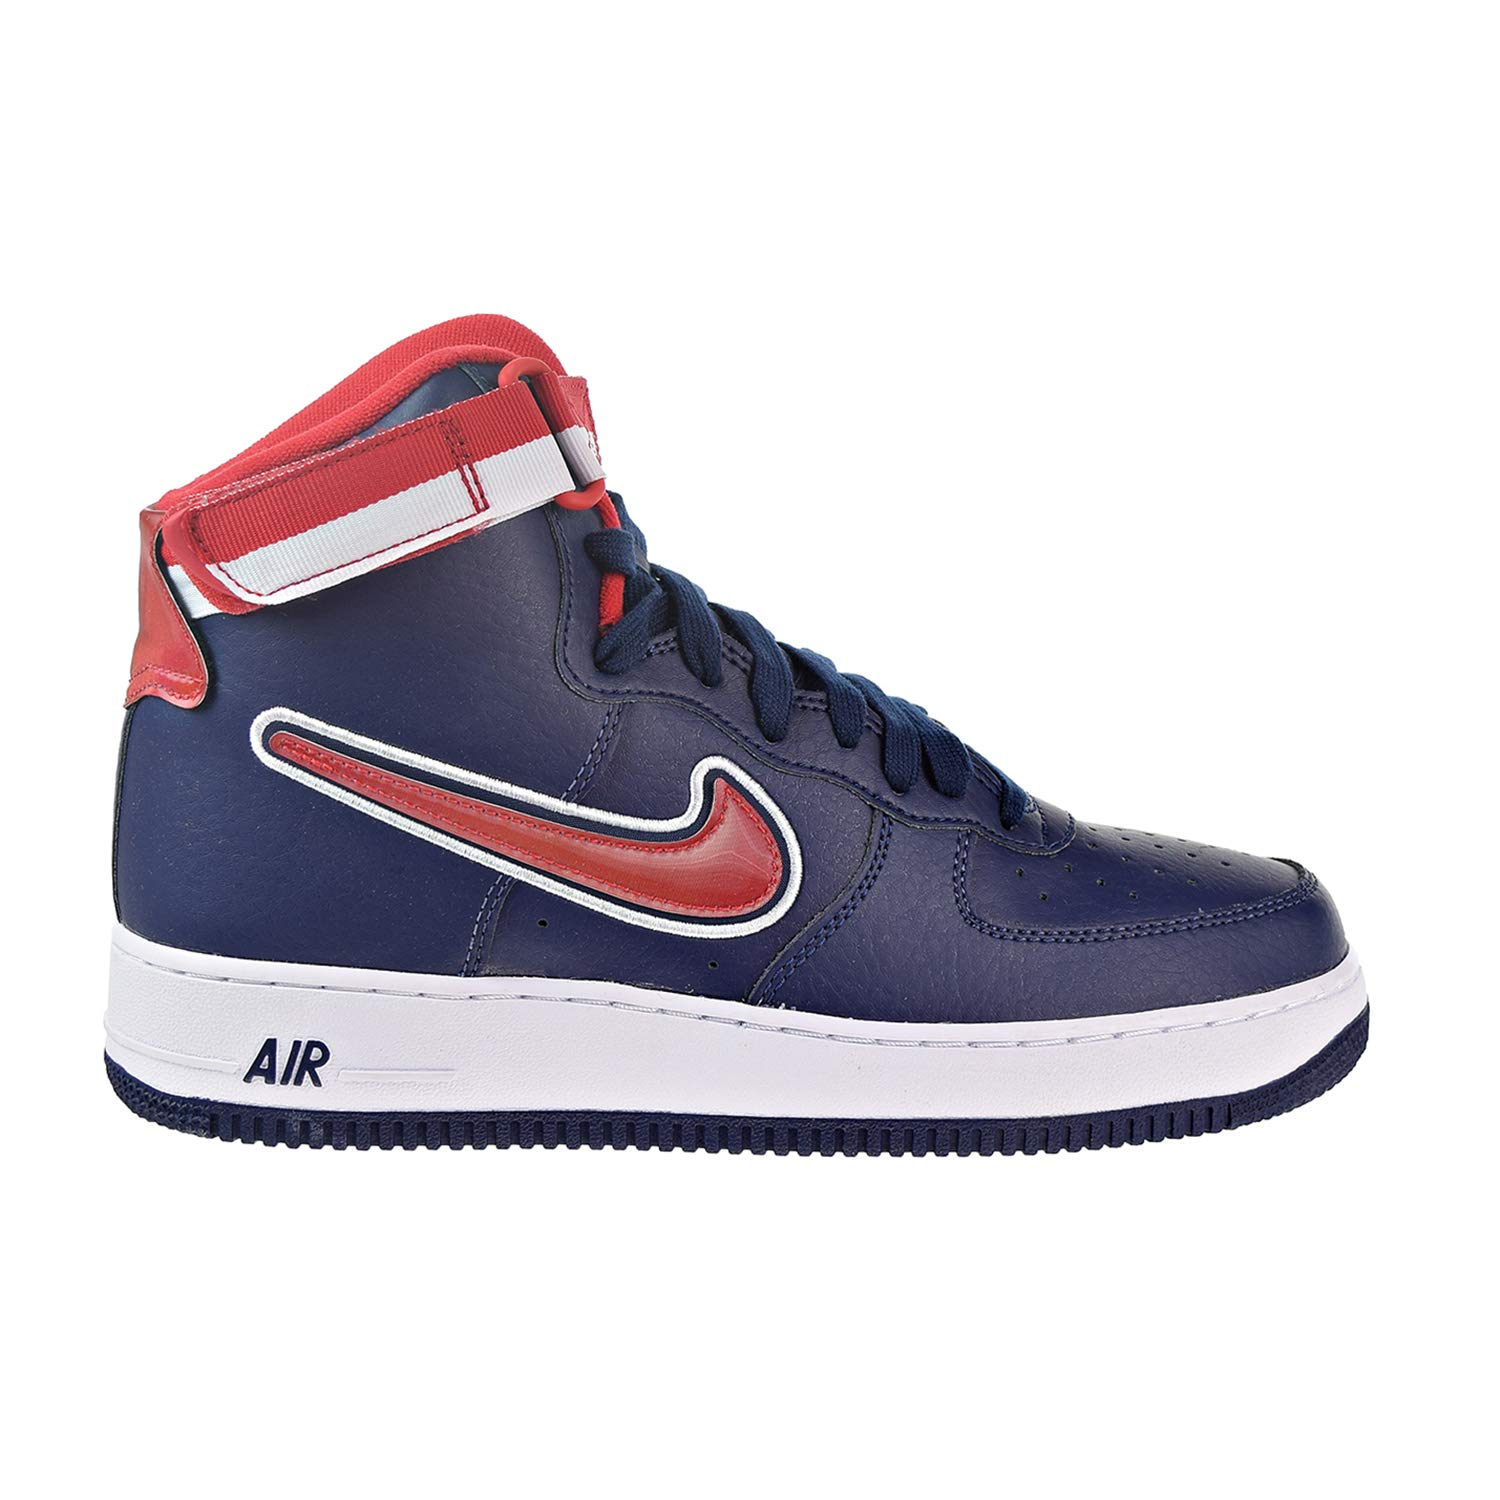 Nike Air Force 1 High '07 LV8 Sport Men's Shoes Midnight Navy/White/Red  av3938-400 (9 D(M) US)